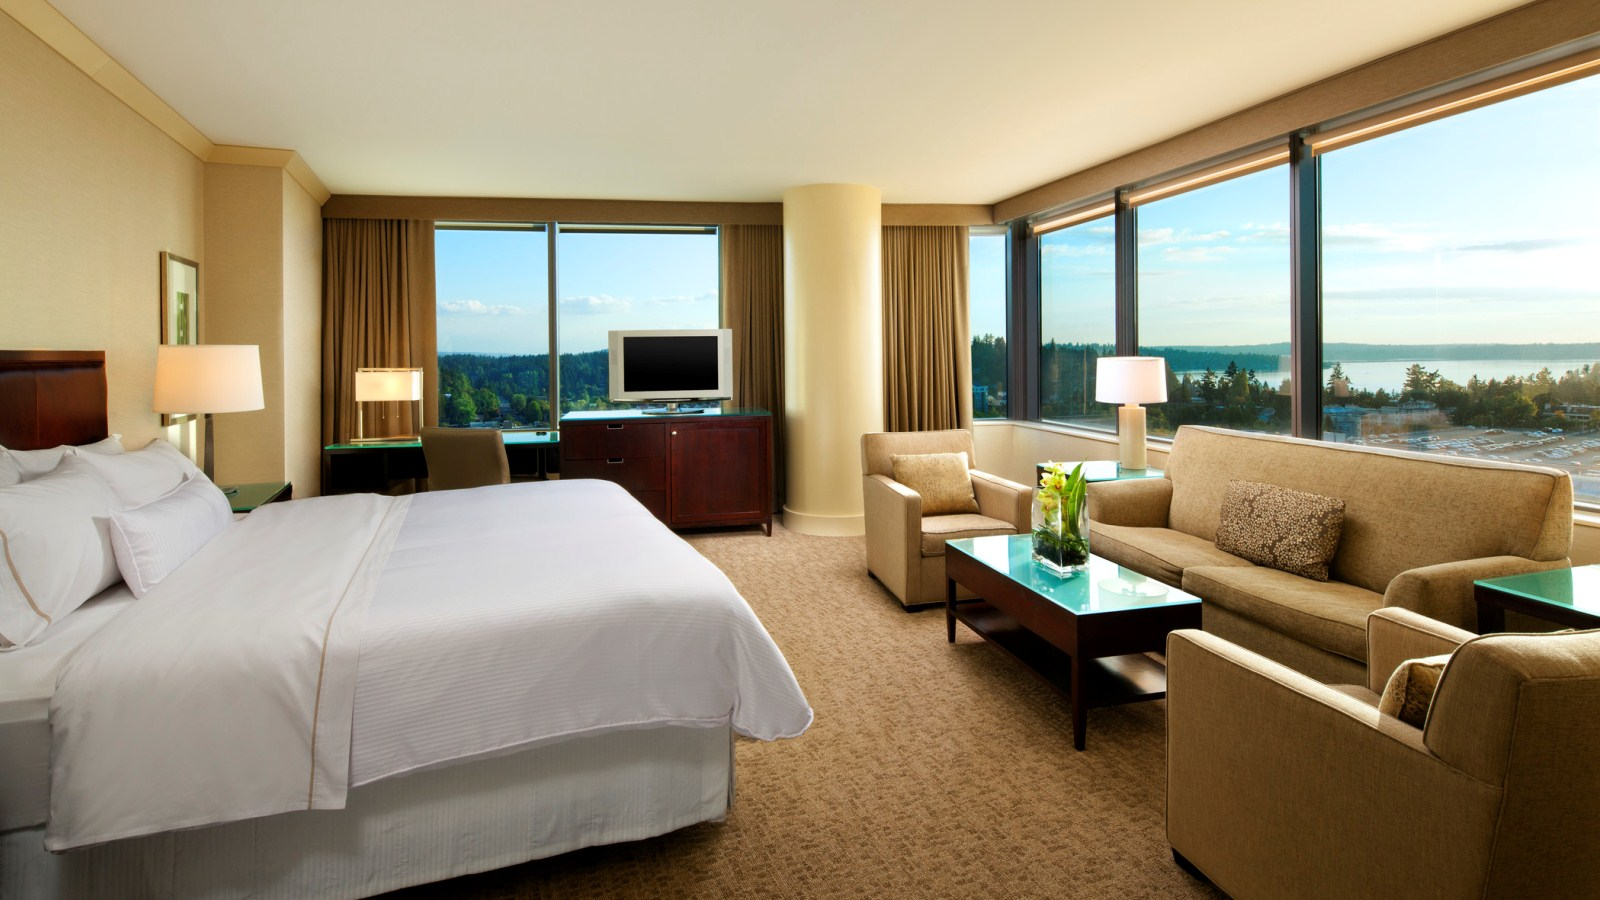 A Corner Studio Suite with views of Lake Washington at the Westin Bellevue